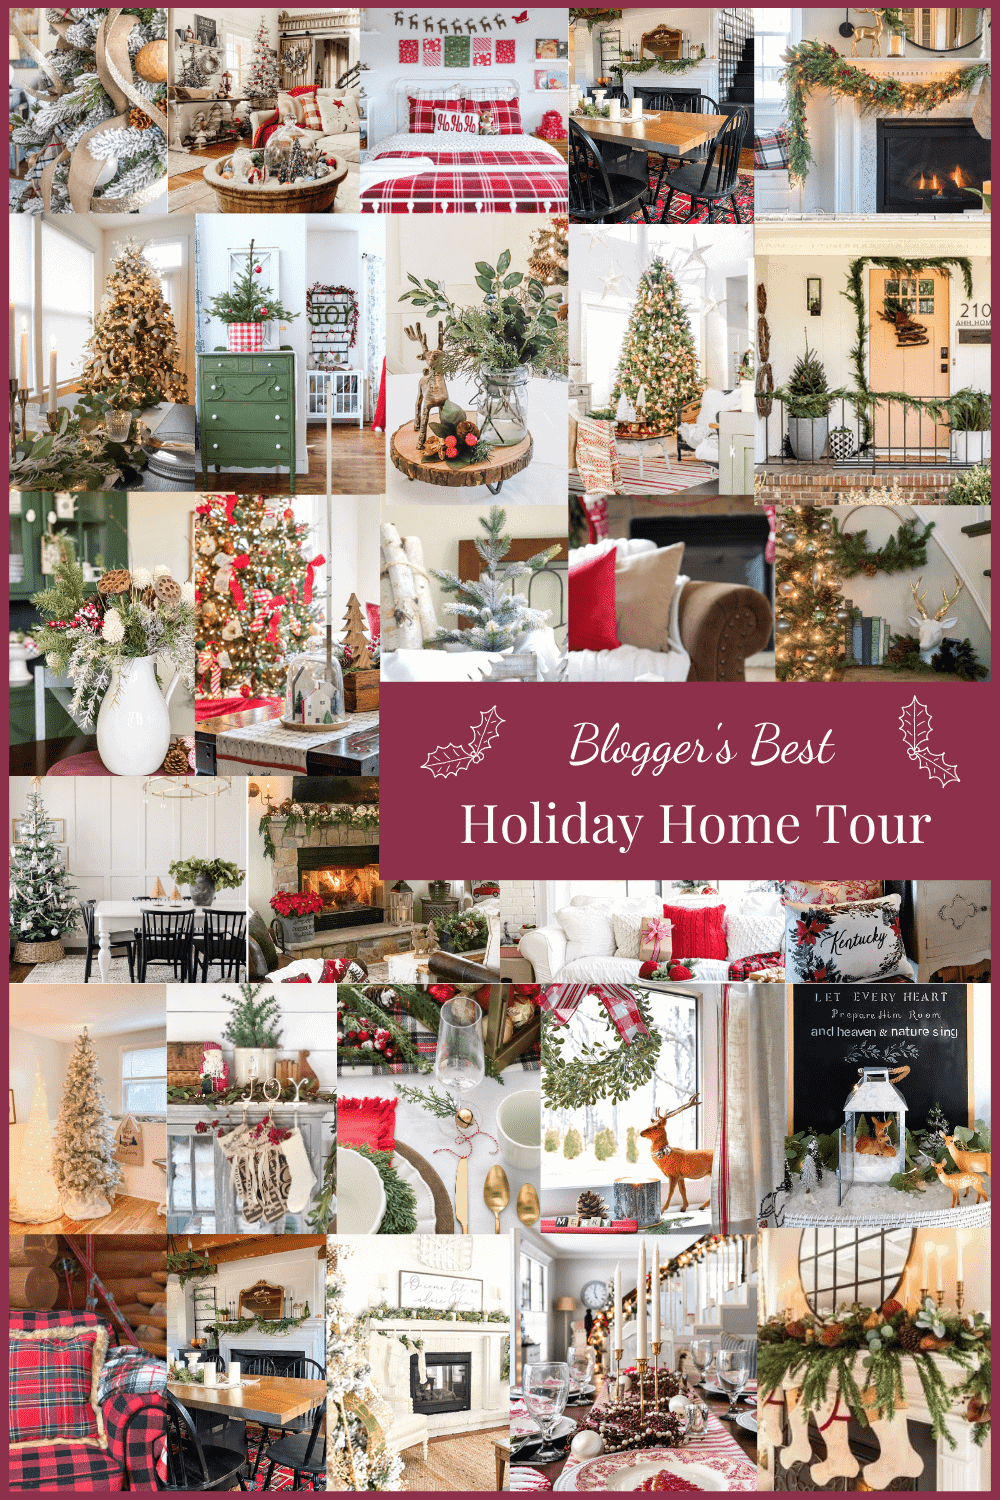 Blogger's Best Holiday Home Tour